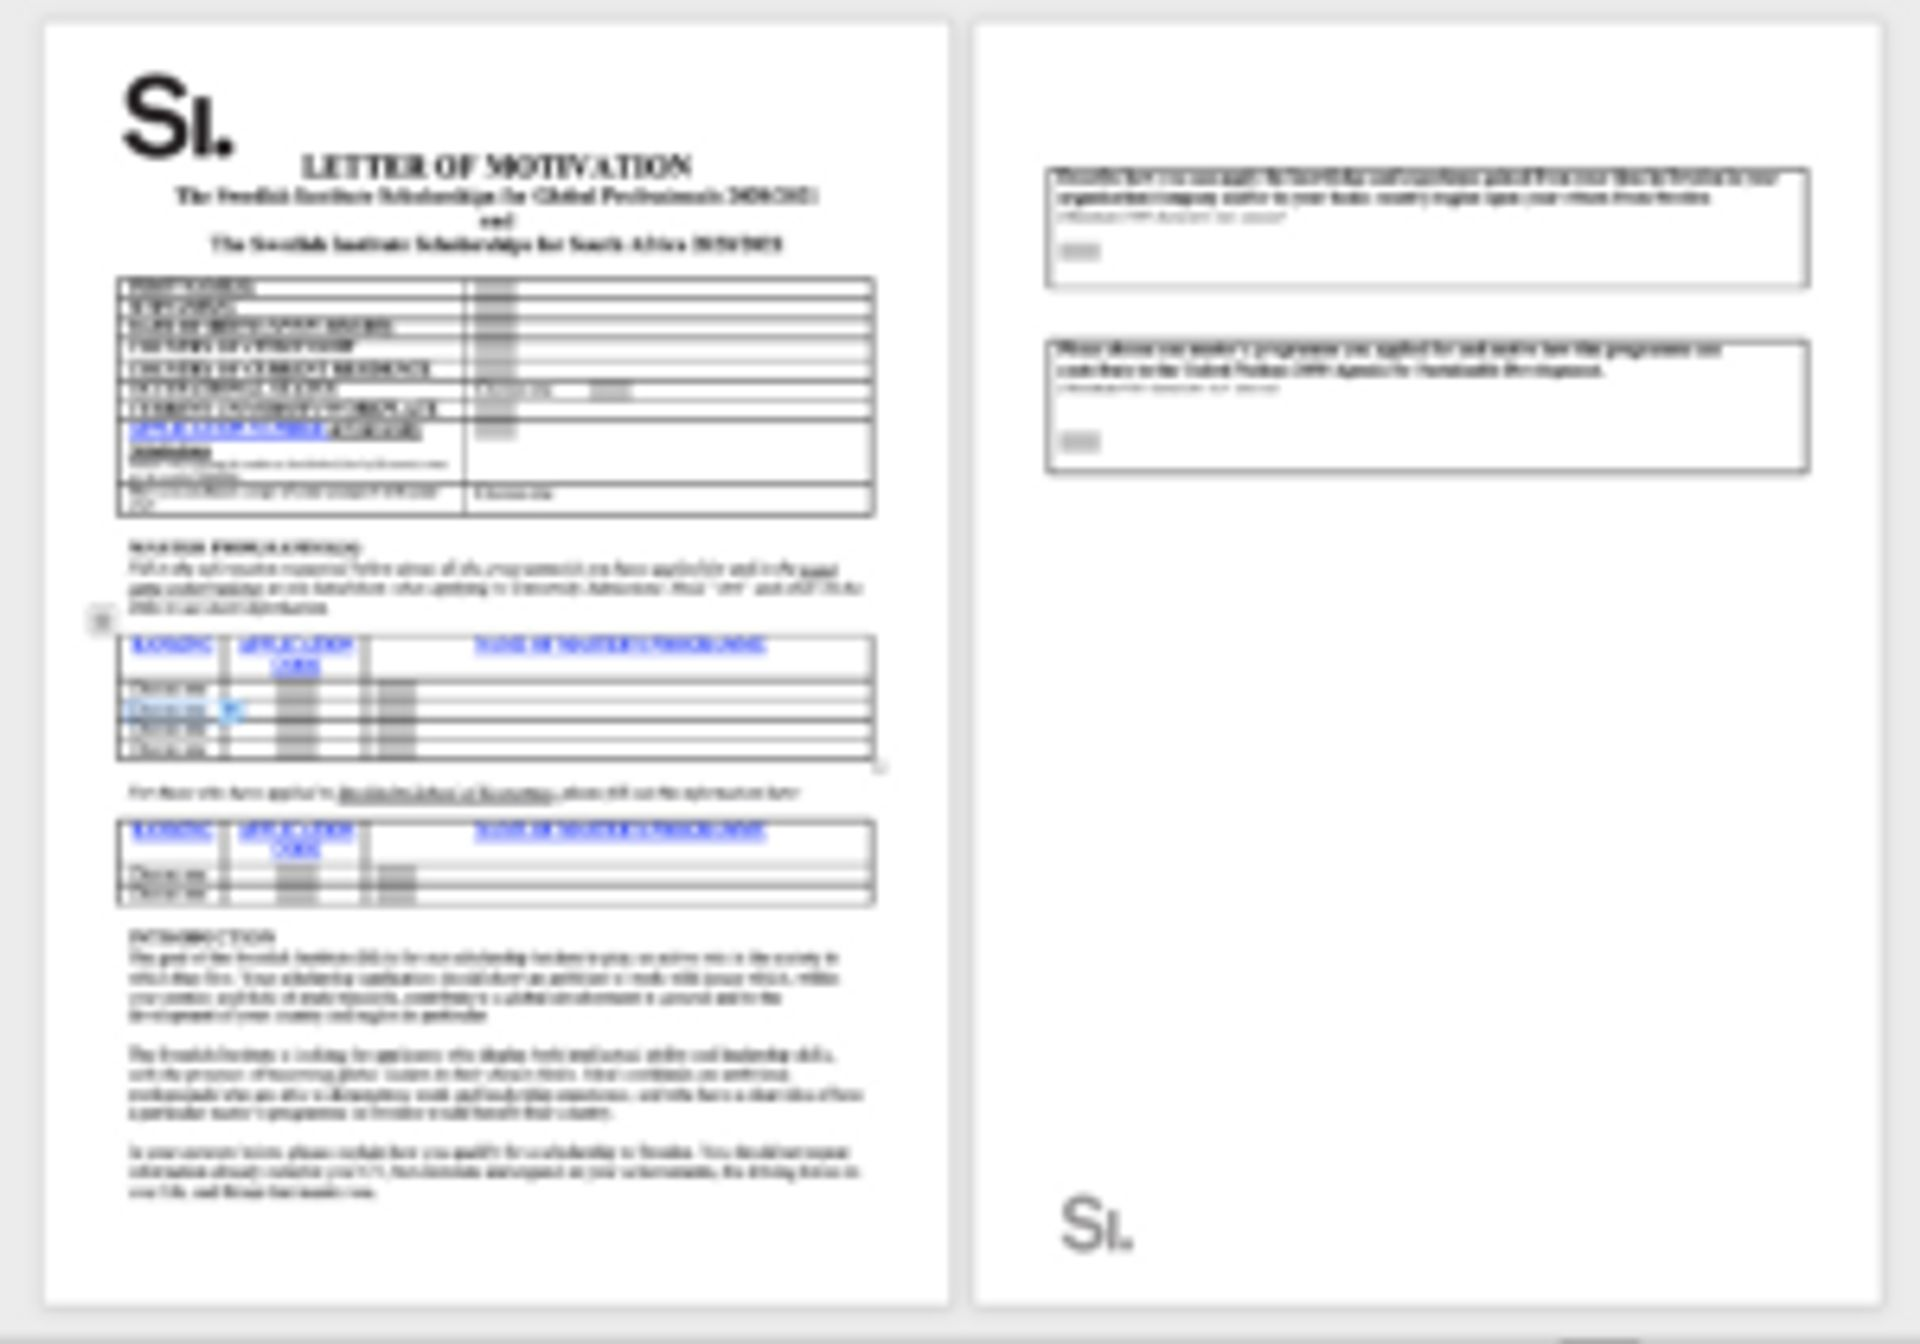 Screenshot of motivation letter form.